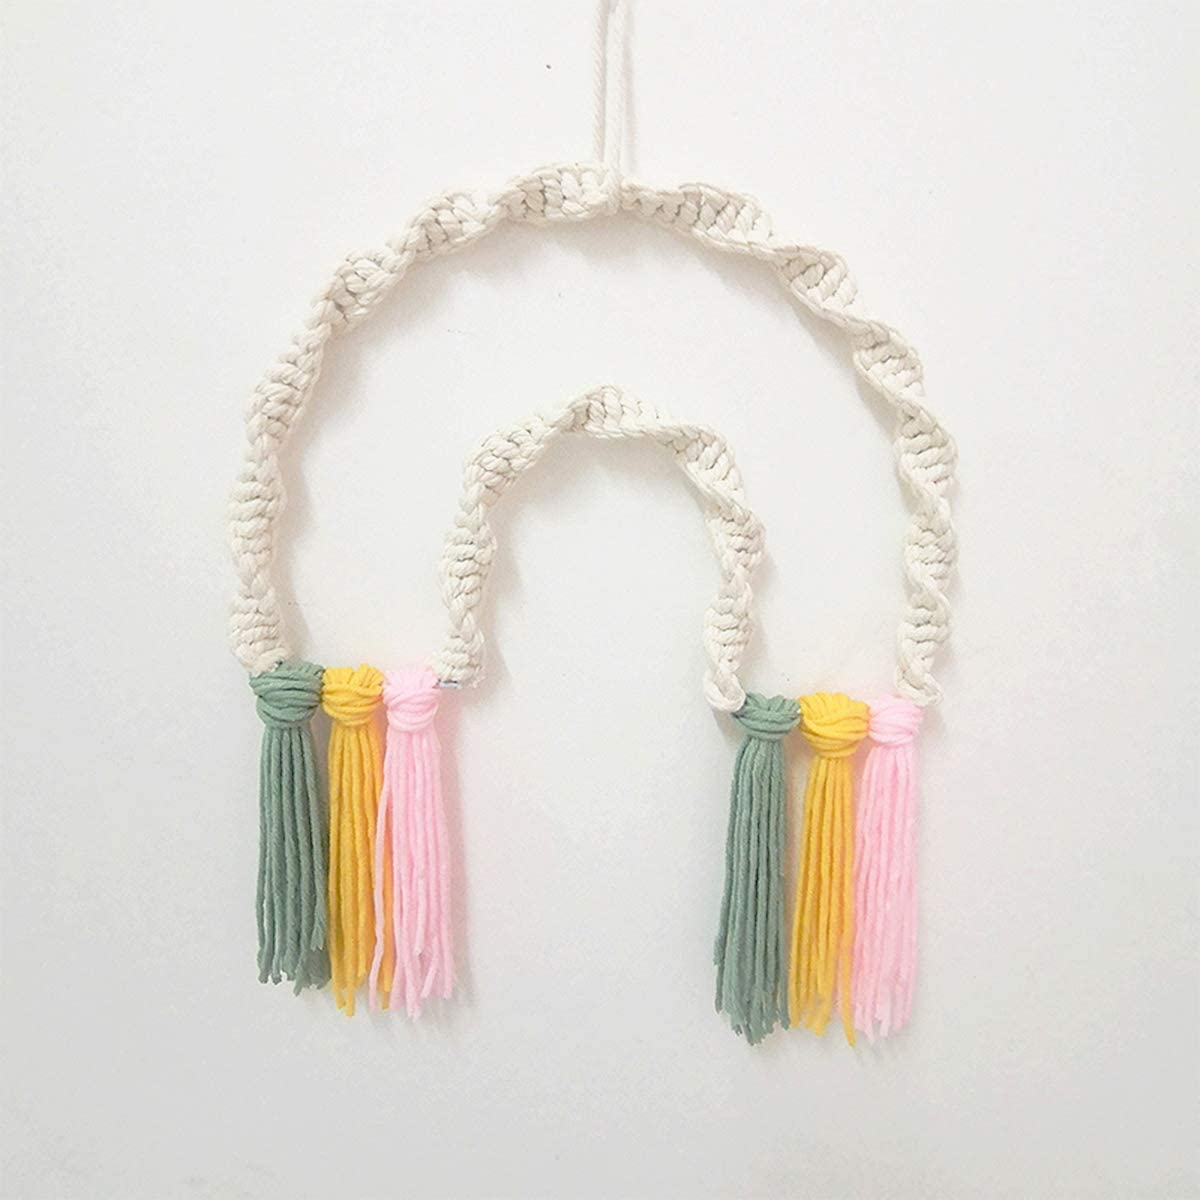 MAFELOE Hand-Knitted Room Home Decoration, Woven Wall Hanging Wall Home/Room Art Décor, Chic Tassels Pendant Wall Art Bedroom Living Room Dorm Backdrop Home Decorations - Colorful Tassel Design